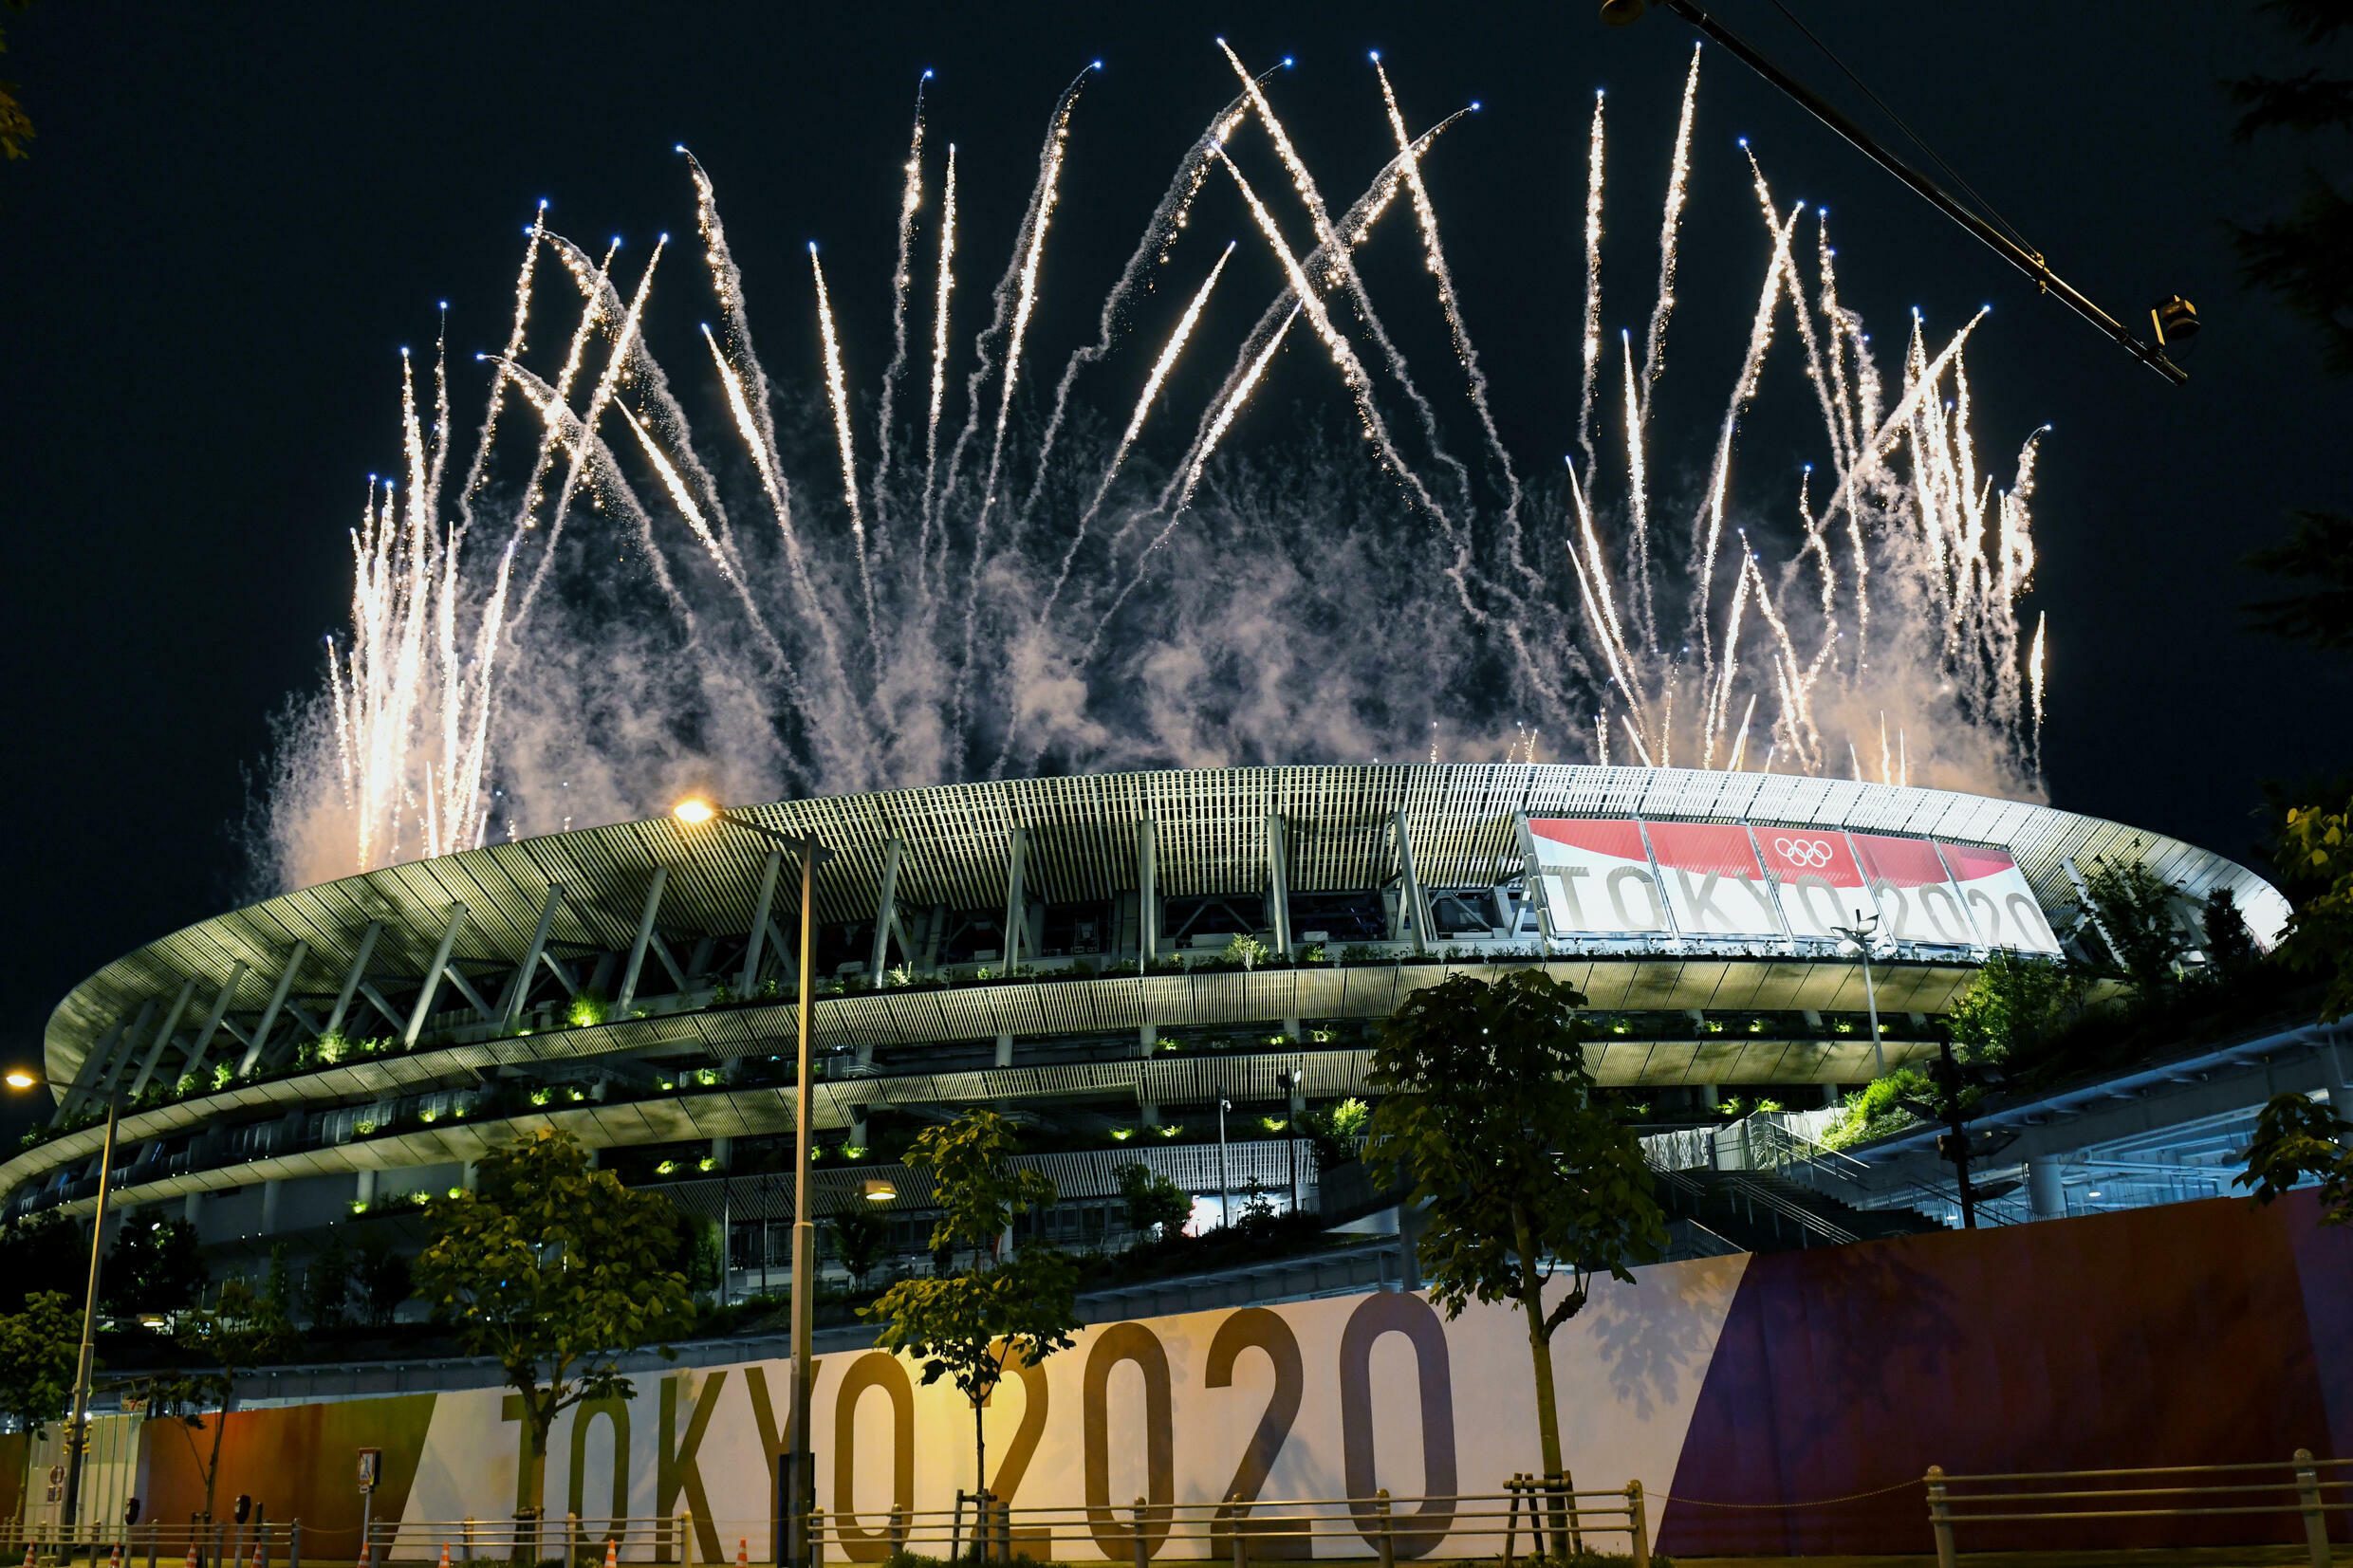 Virus rules kept fans out of the Olympic opening ceremony but many gathered nearby to watch